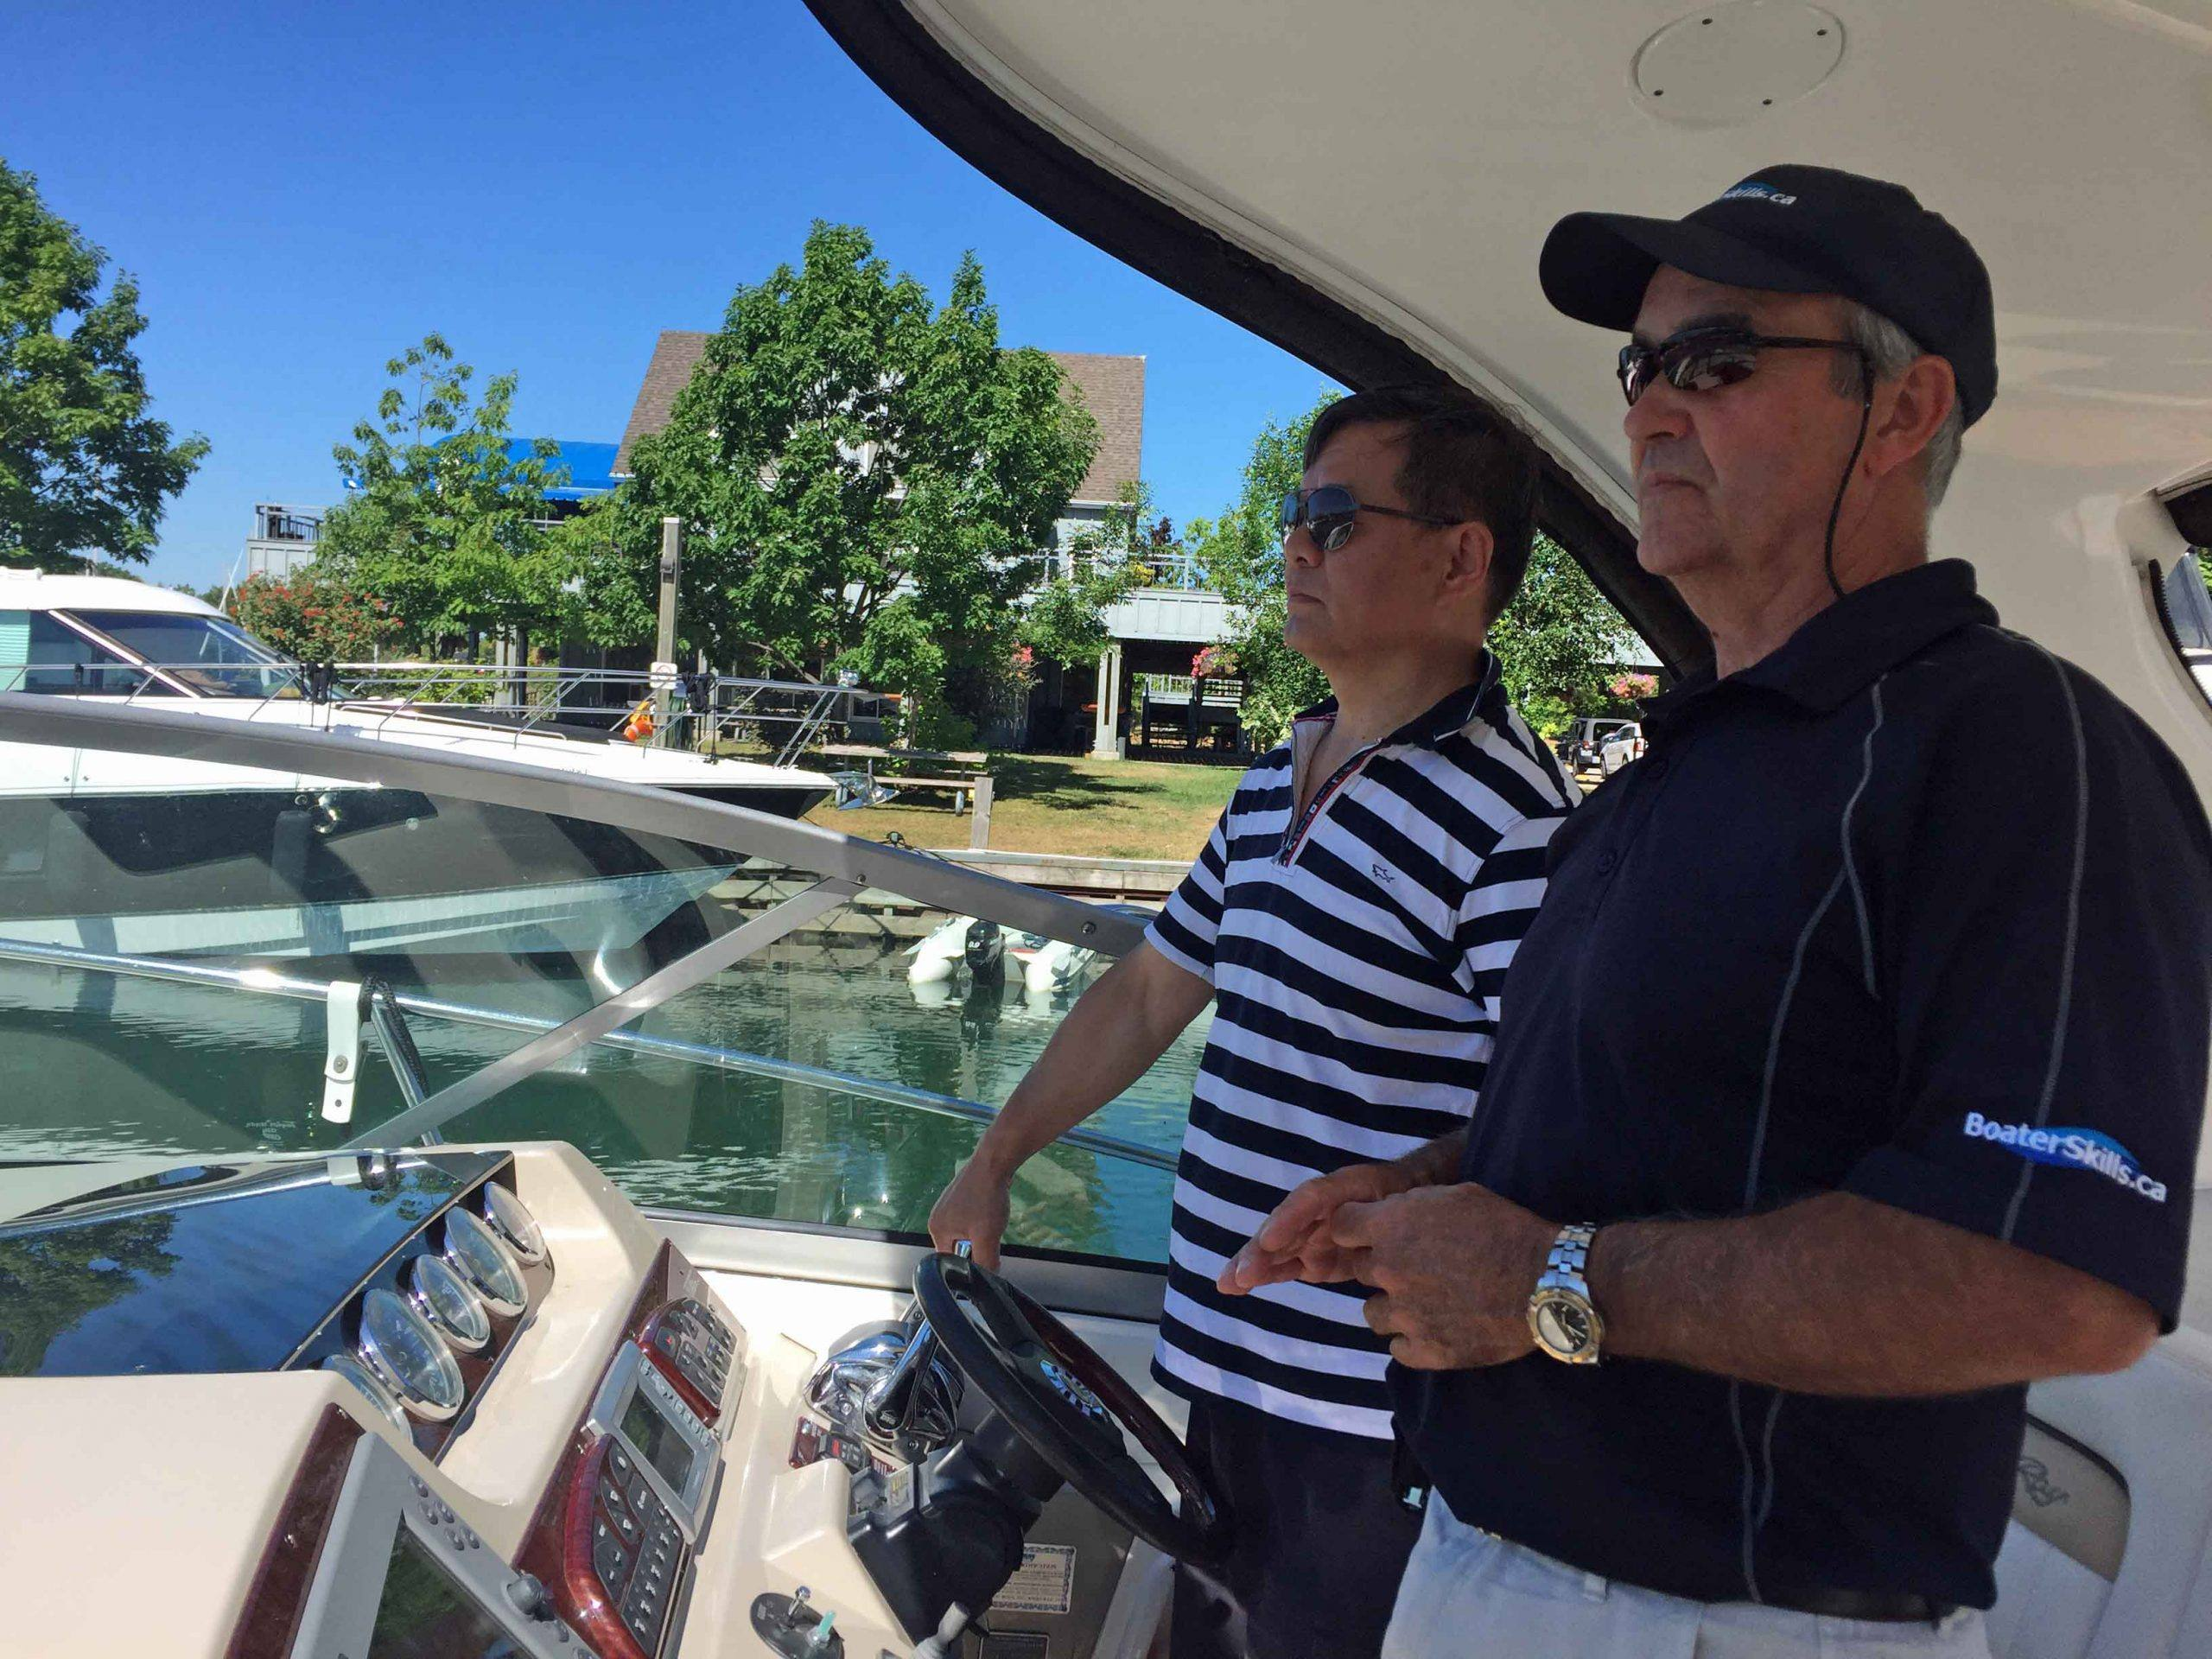 Boat Handling Clinics For Power and Sail | BoaterSkills.ca